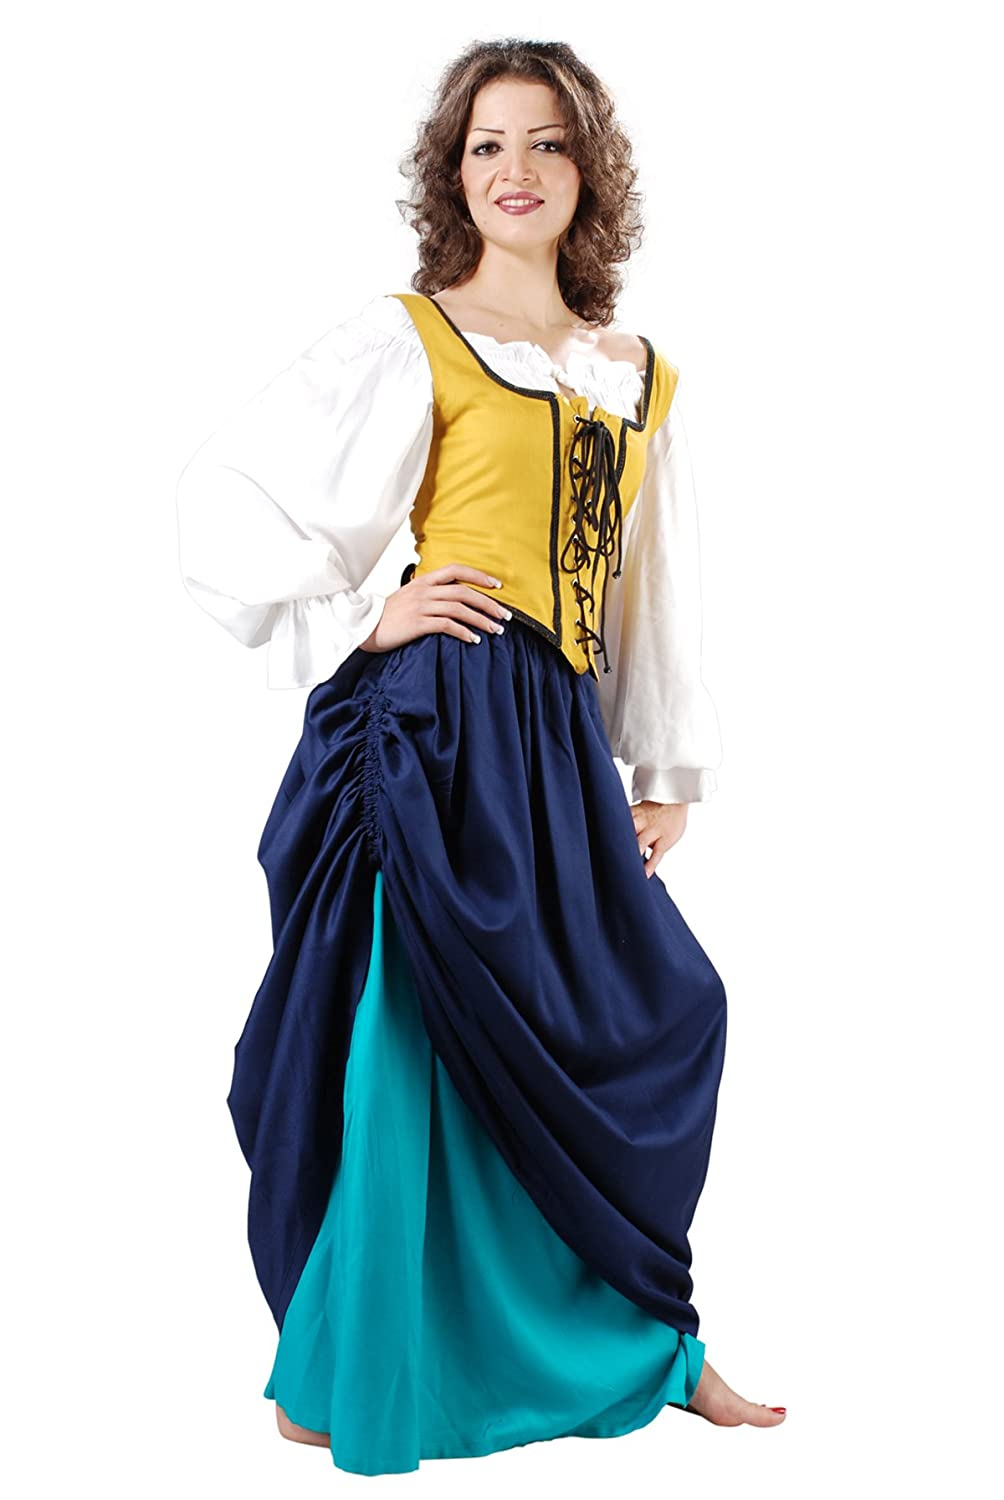 Women's Double-Layer Navy Blue and Petrol Blue Medieval Renaissance Skirt by Armor Venue